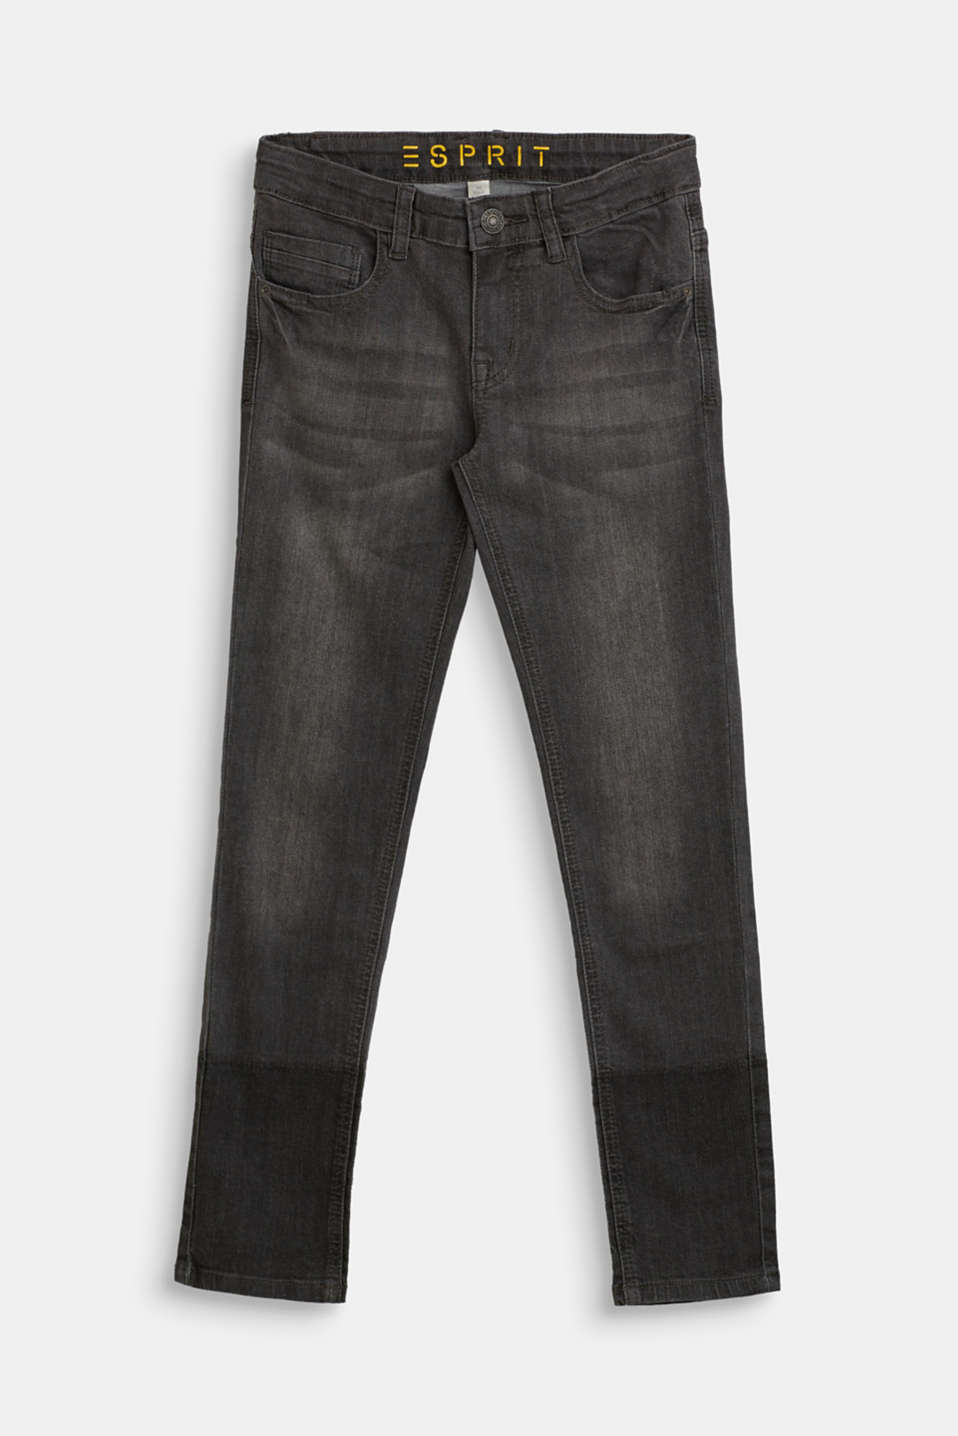 Esprit - Super stretchy jeans with a washed-out finish